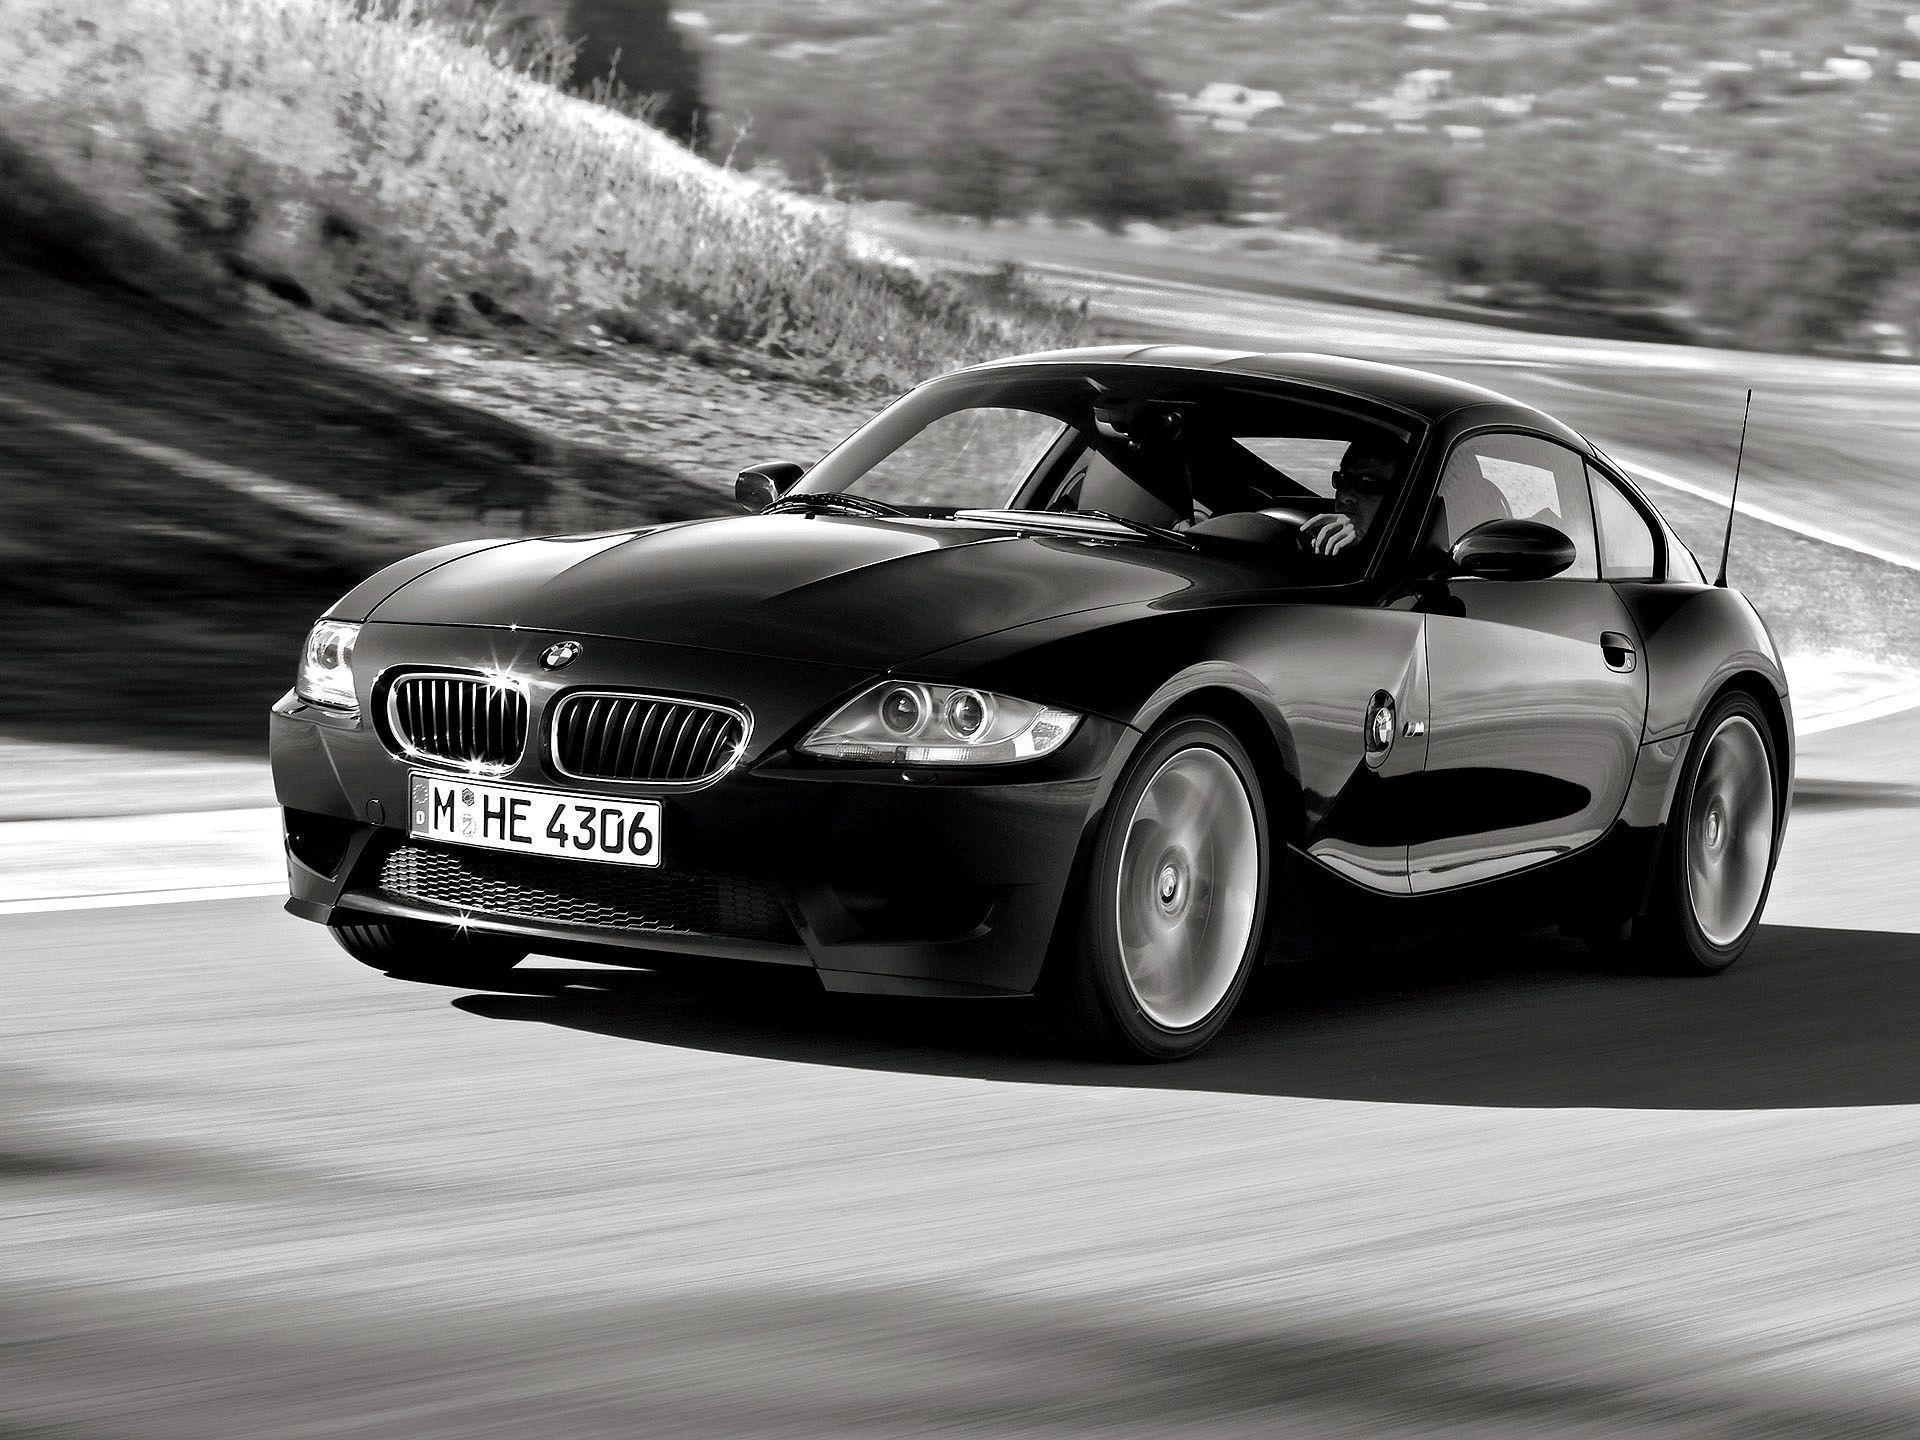 BMW Z4 M Wallpaper 1920x1440